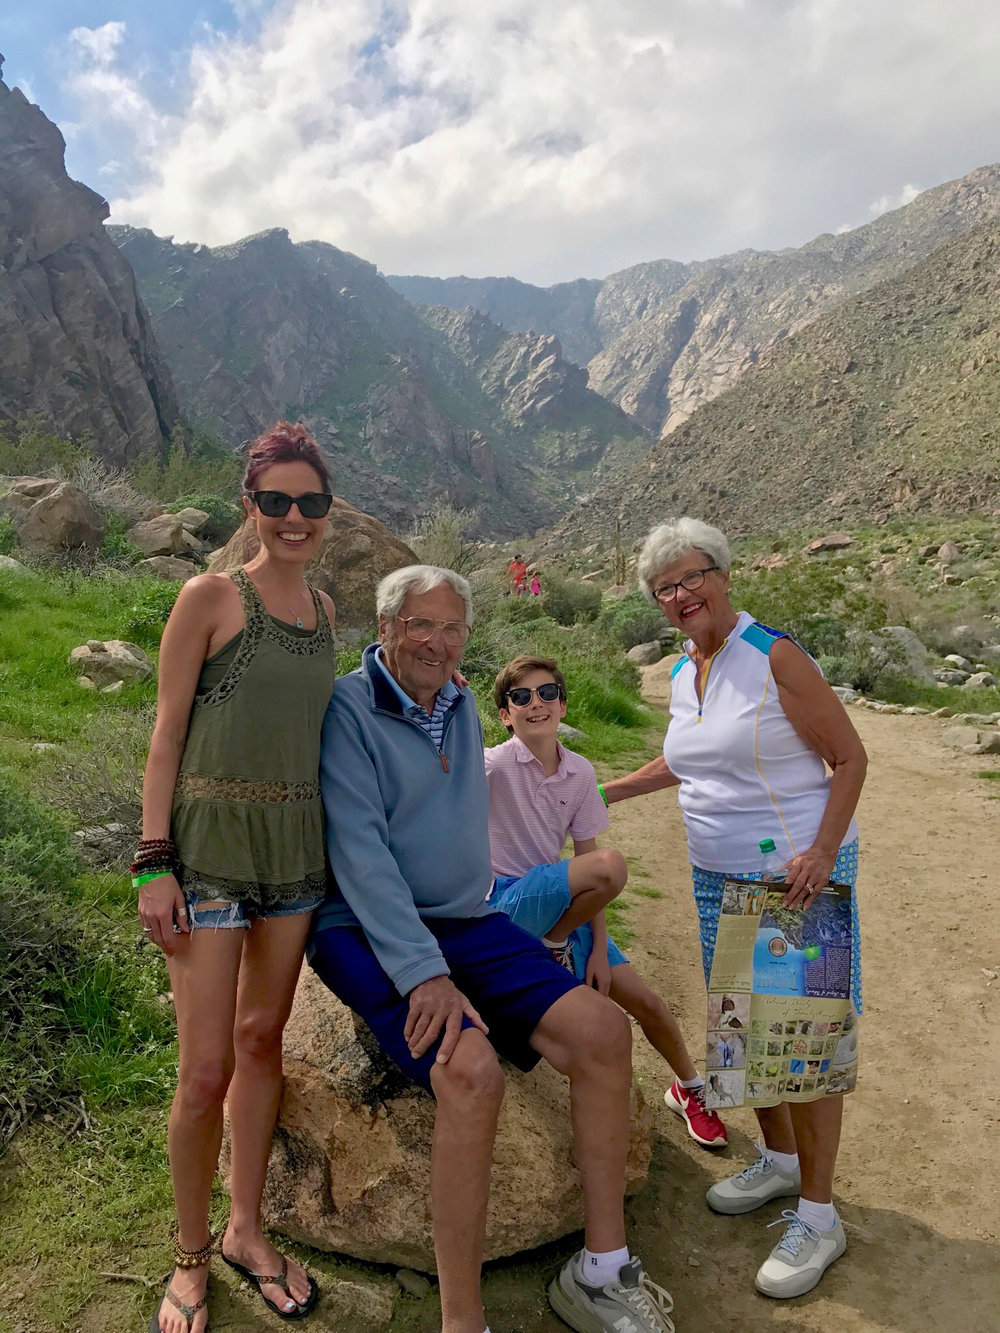 Family time in Palm Springs